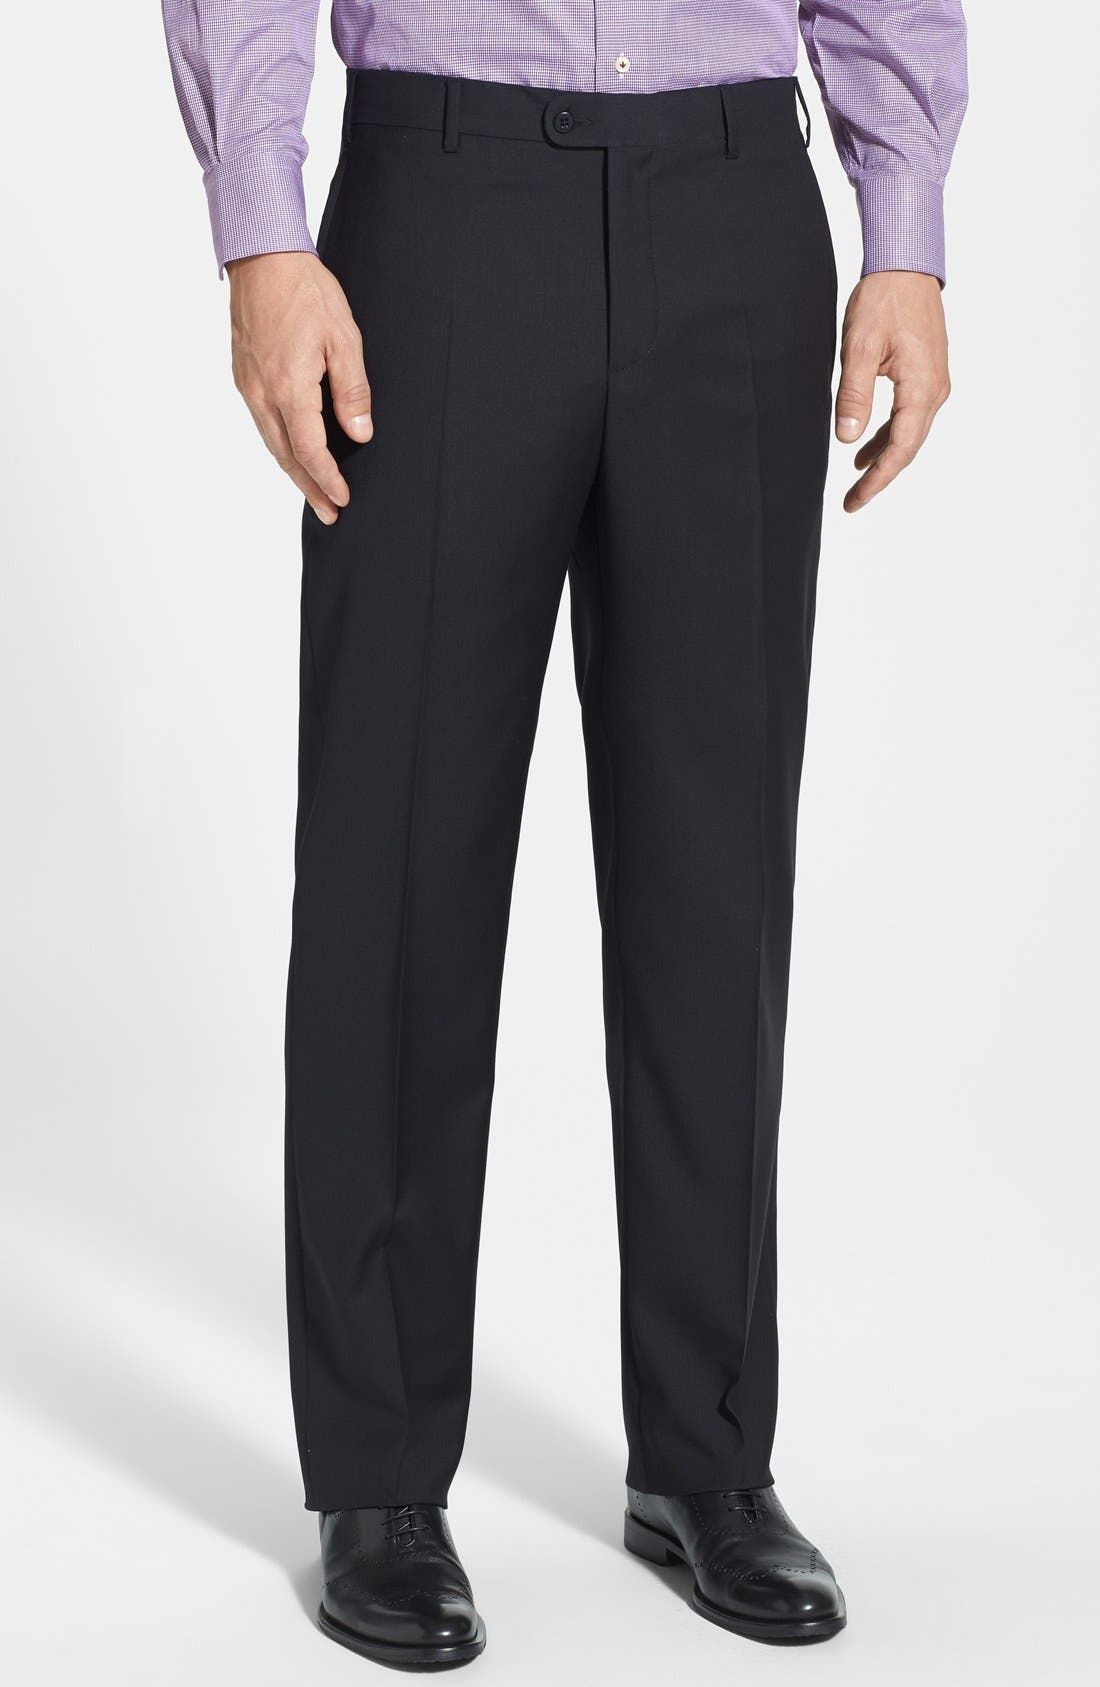 'Devon' Flat Front Wool Trousers,                             Main thumbnail 2, color,